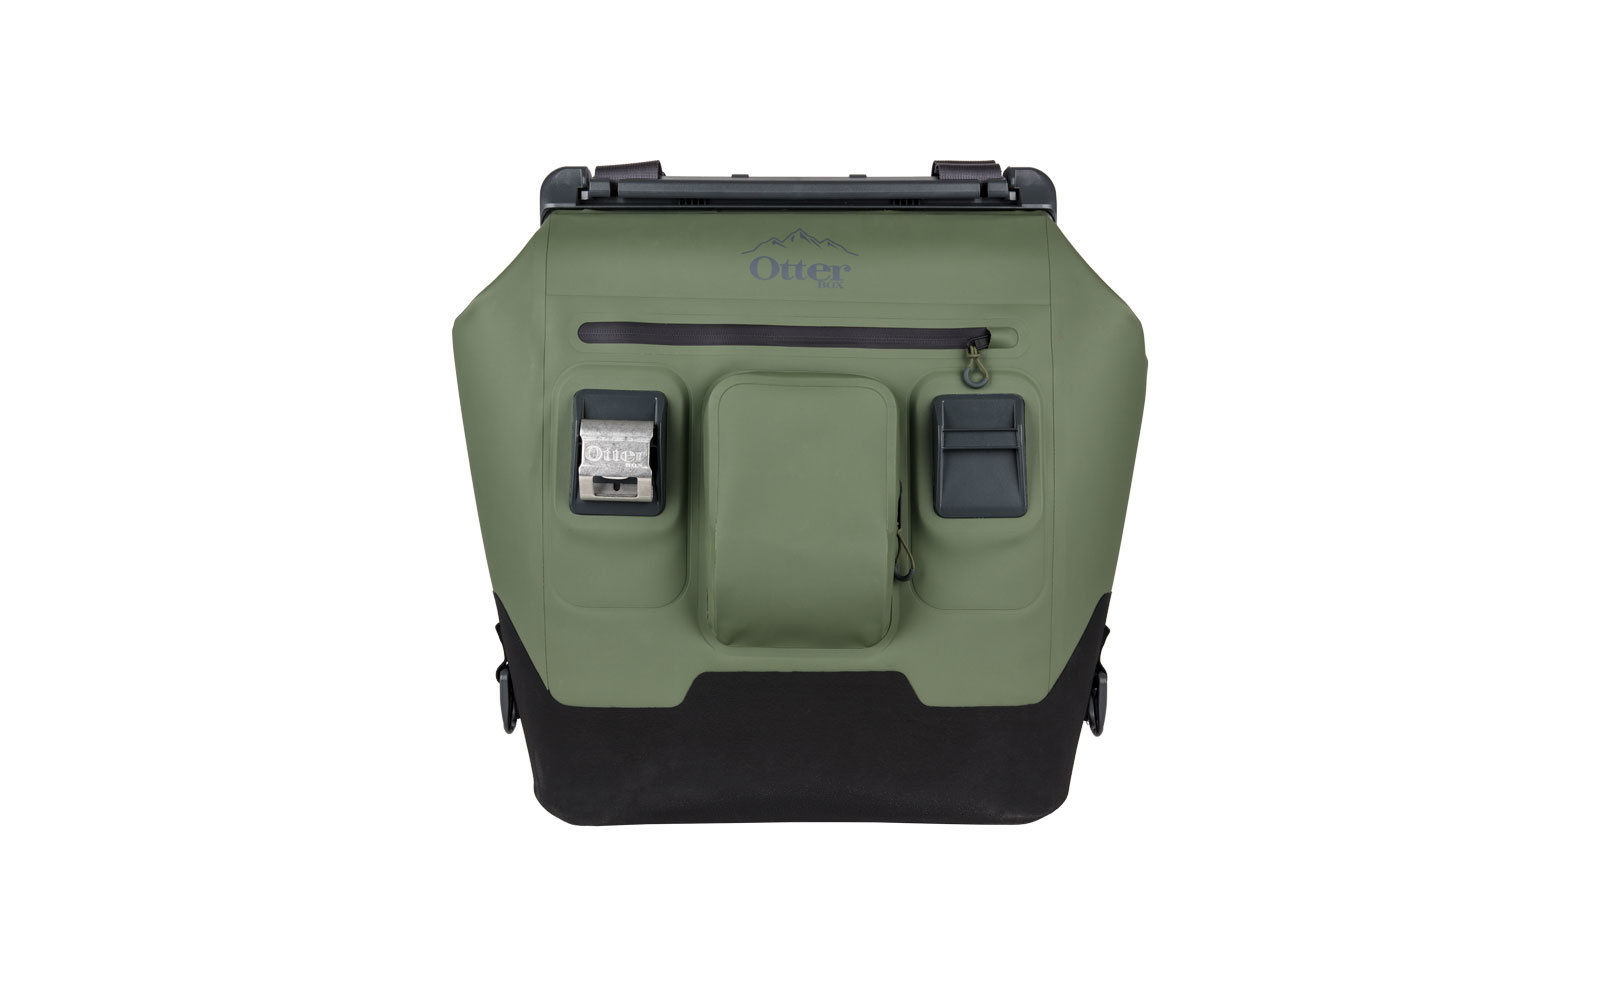 Otterbox Trooper LT 30 Cooler